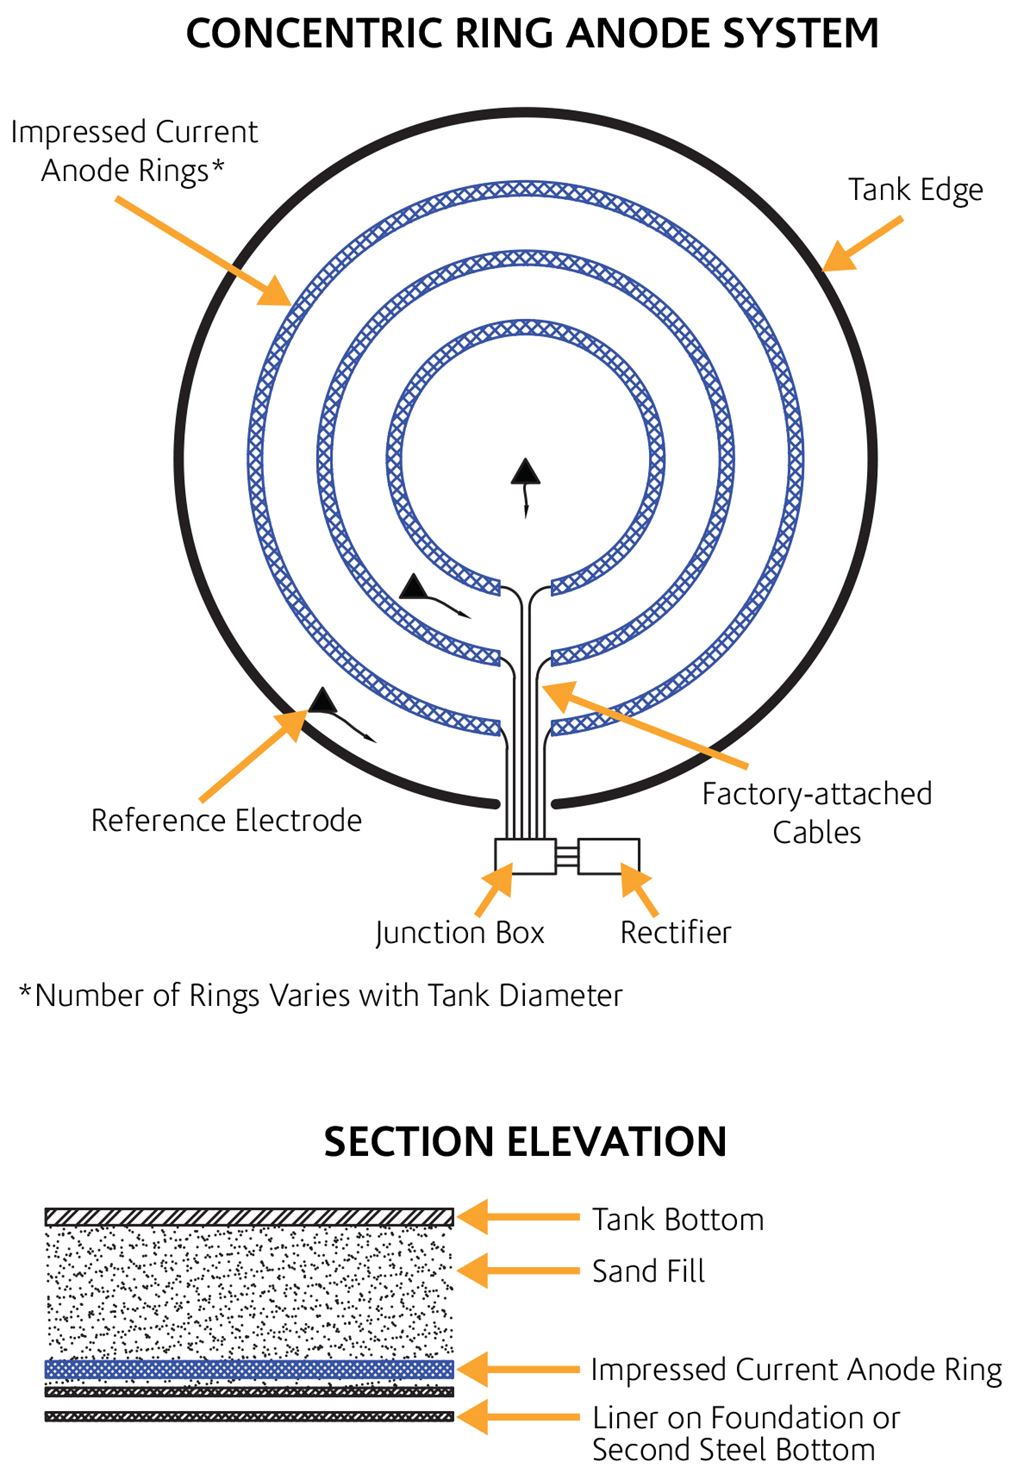 Concentric ring anode system for impressed current cathodic protection.